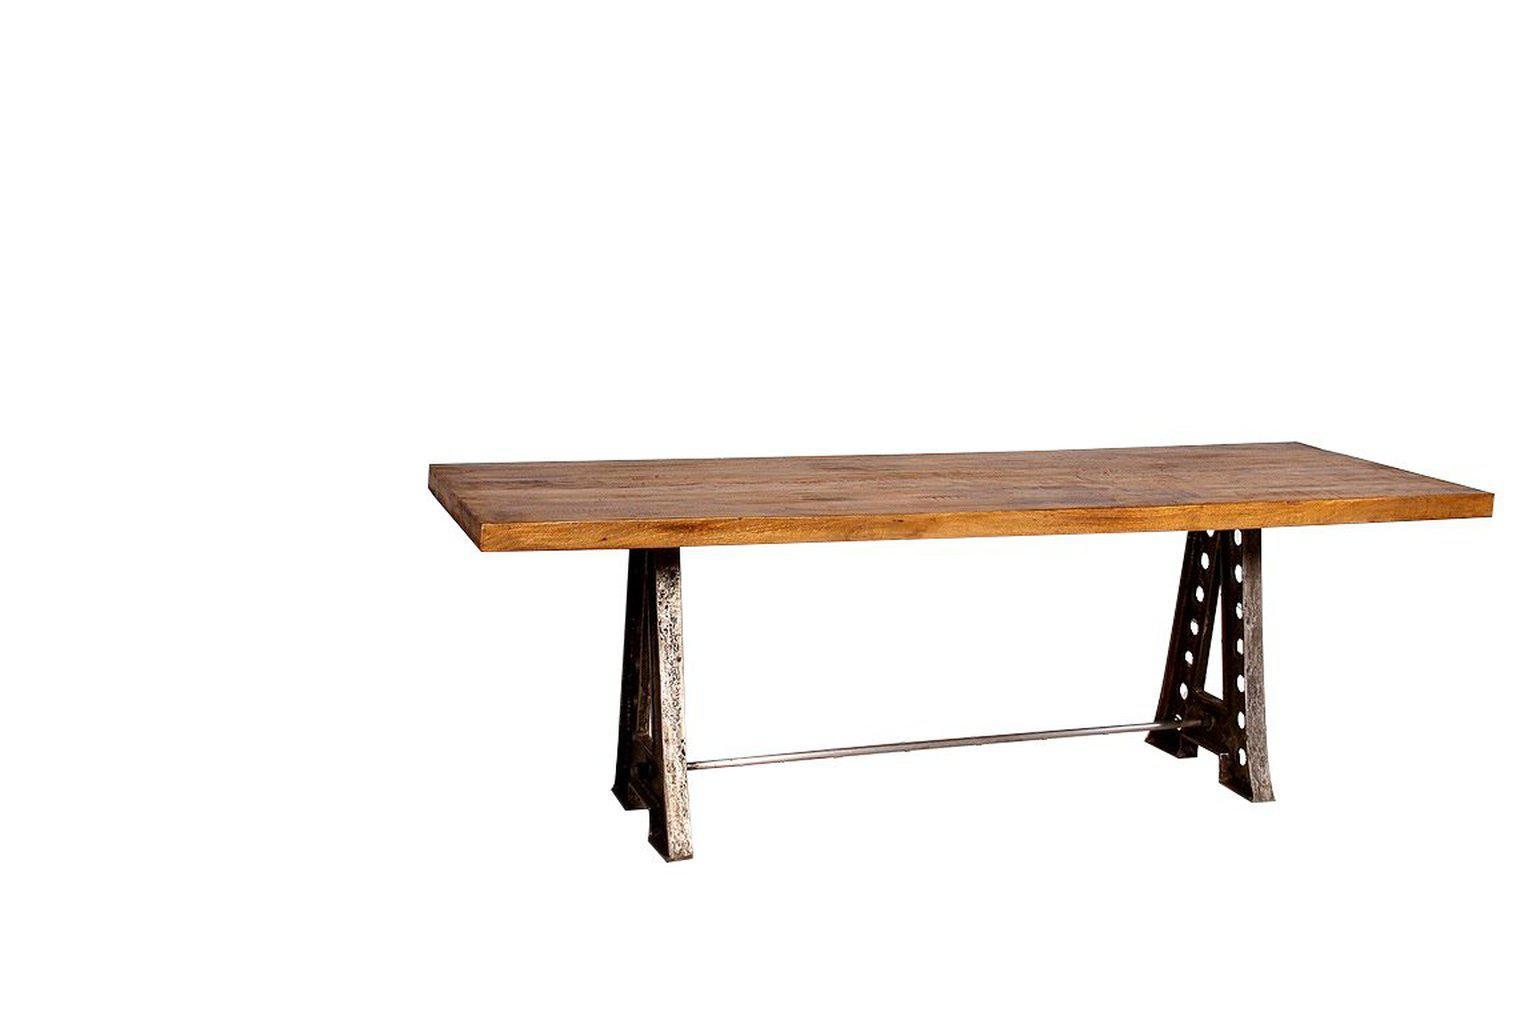 Terrific Handcrafted Industrial A Frame Cast Iron Dining Bench Ibusinesslaw Wood Chair Design Ideas Ibusinesslaworg